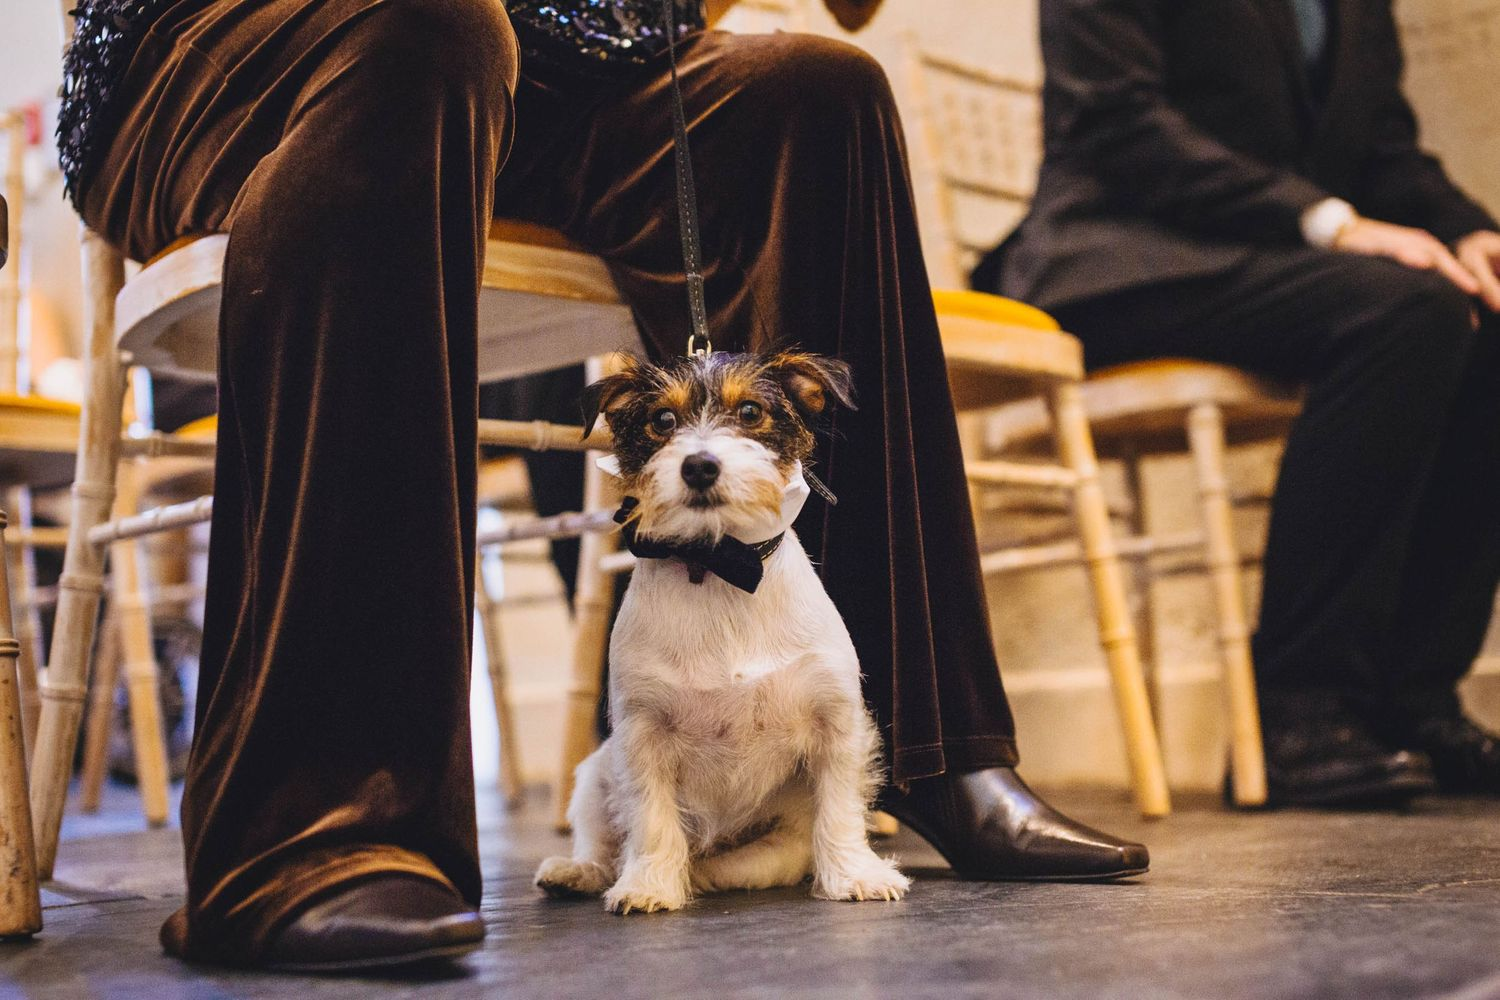 Jack Russell wearing a bow tie at a barn wedding. Top 10 dog-friendly wedding tips.